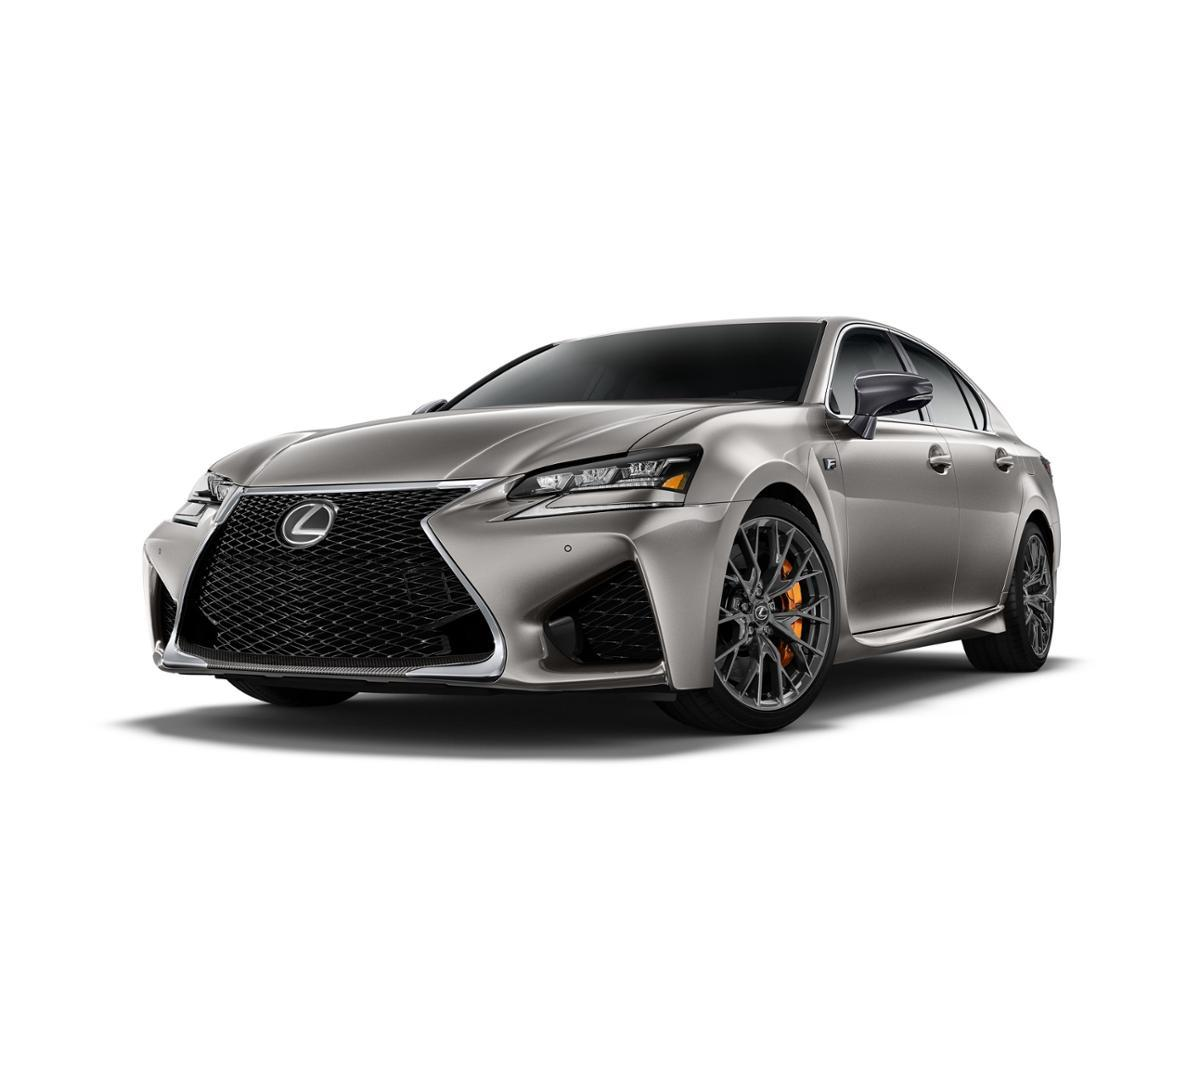 2018 Lexus GS F Vehicle Photo in Santa Monica, CA 90404